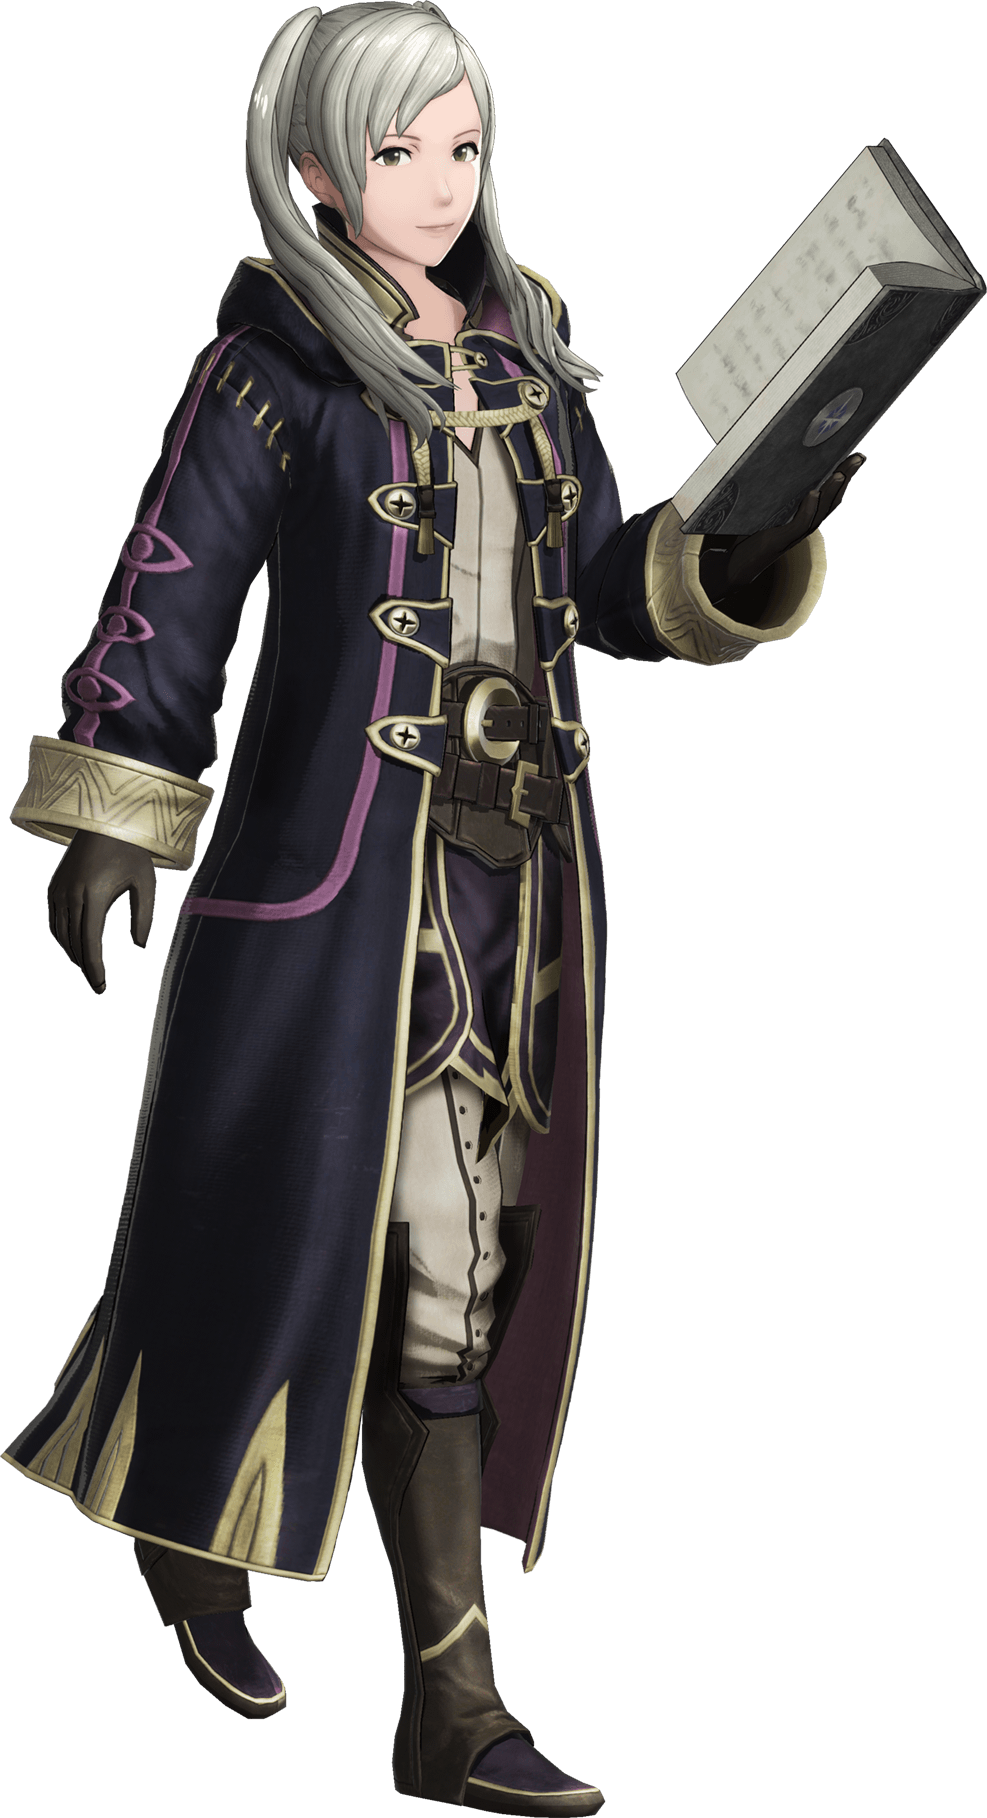 We 39 Re Not Pawns Of Some Scripted Fate I Believe We 39 Re More Much More There 39 S Somet Female Robin Fire Emblem Warriors Female Robin Fire Emblem